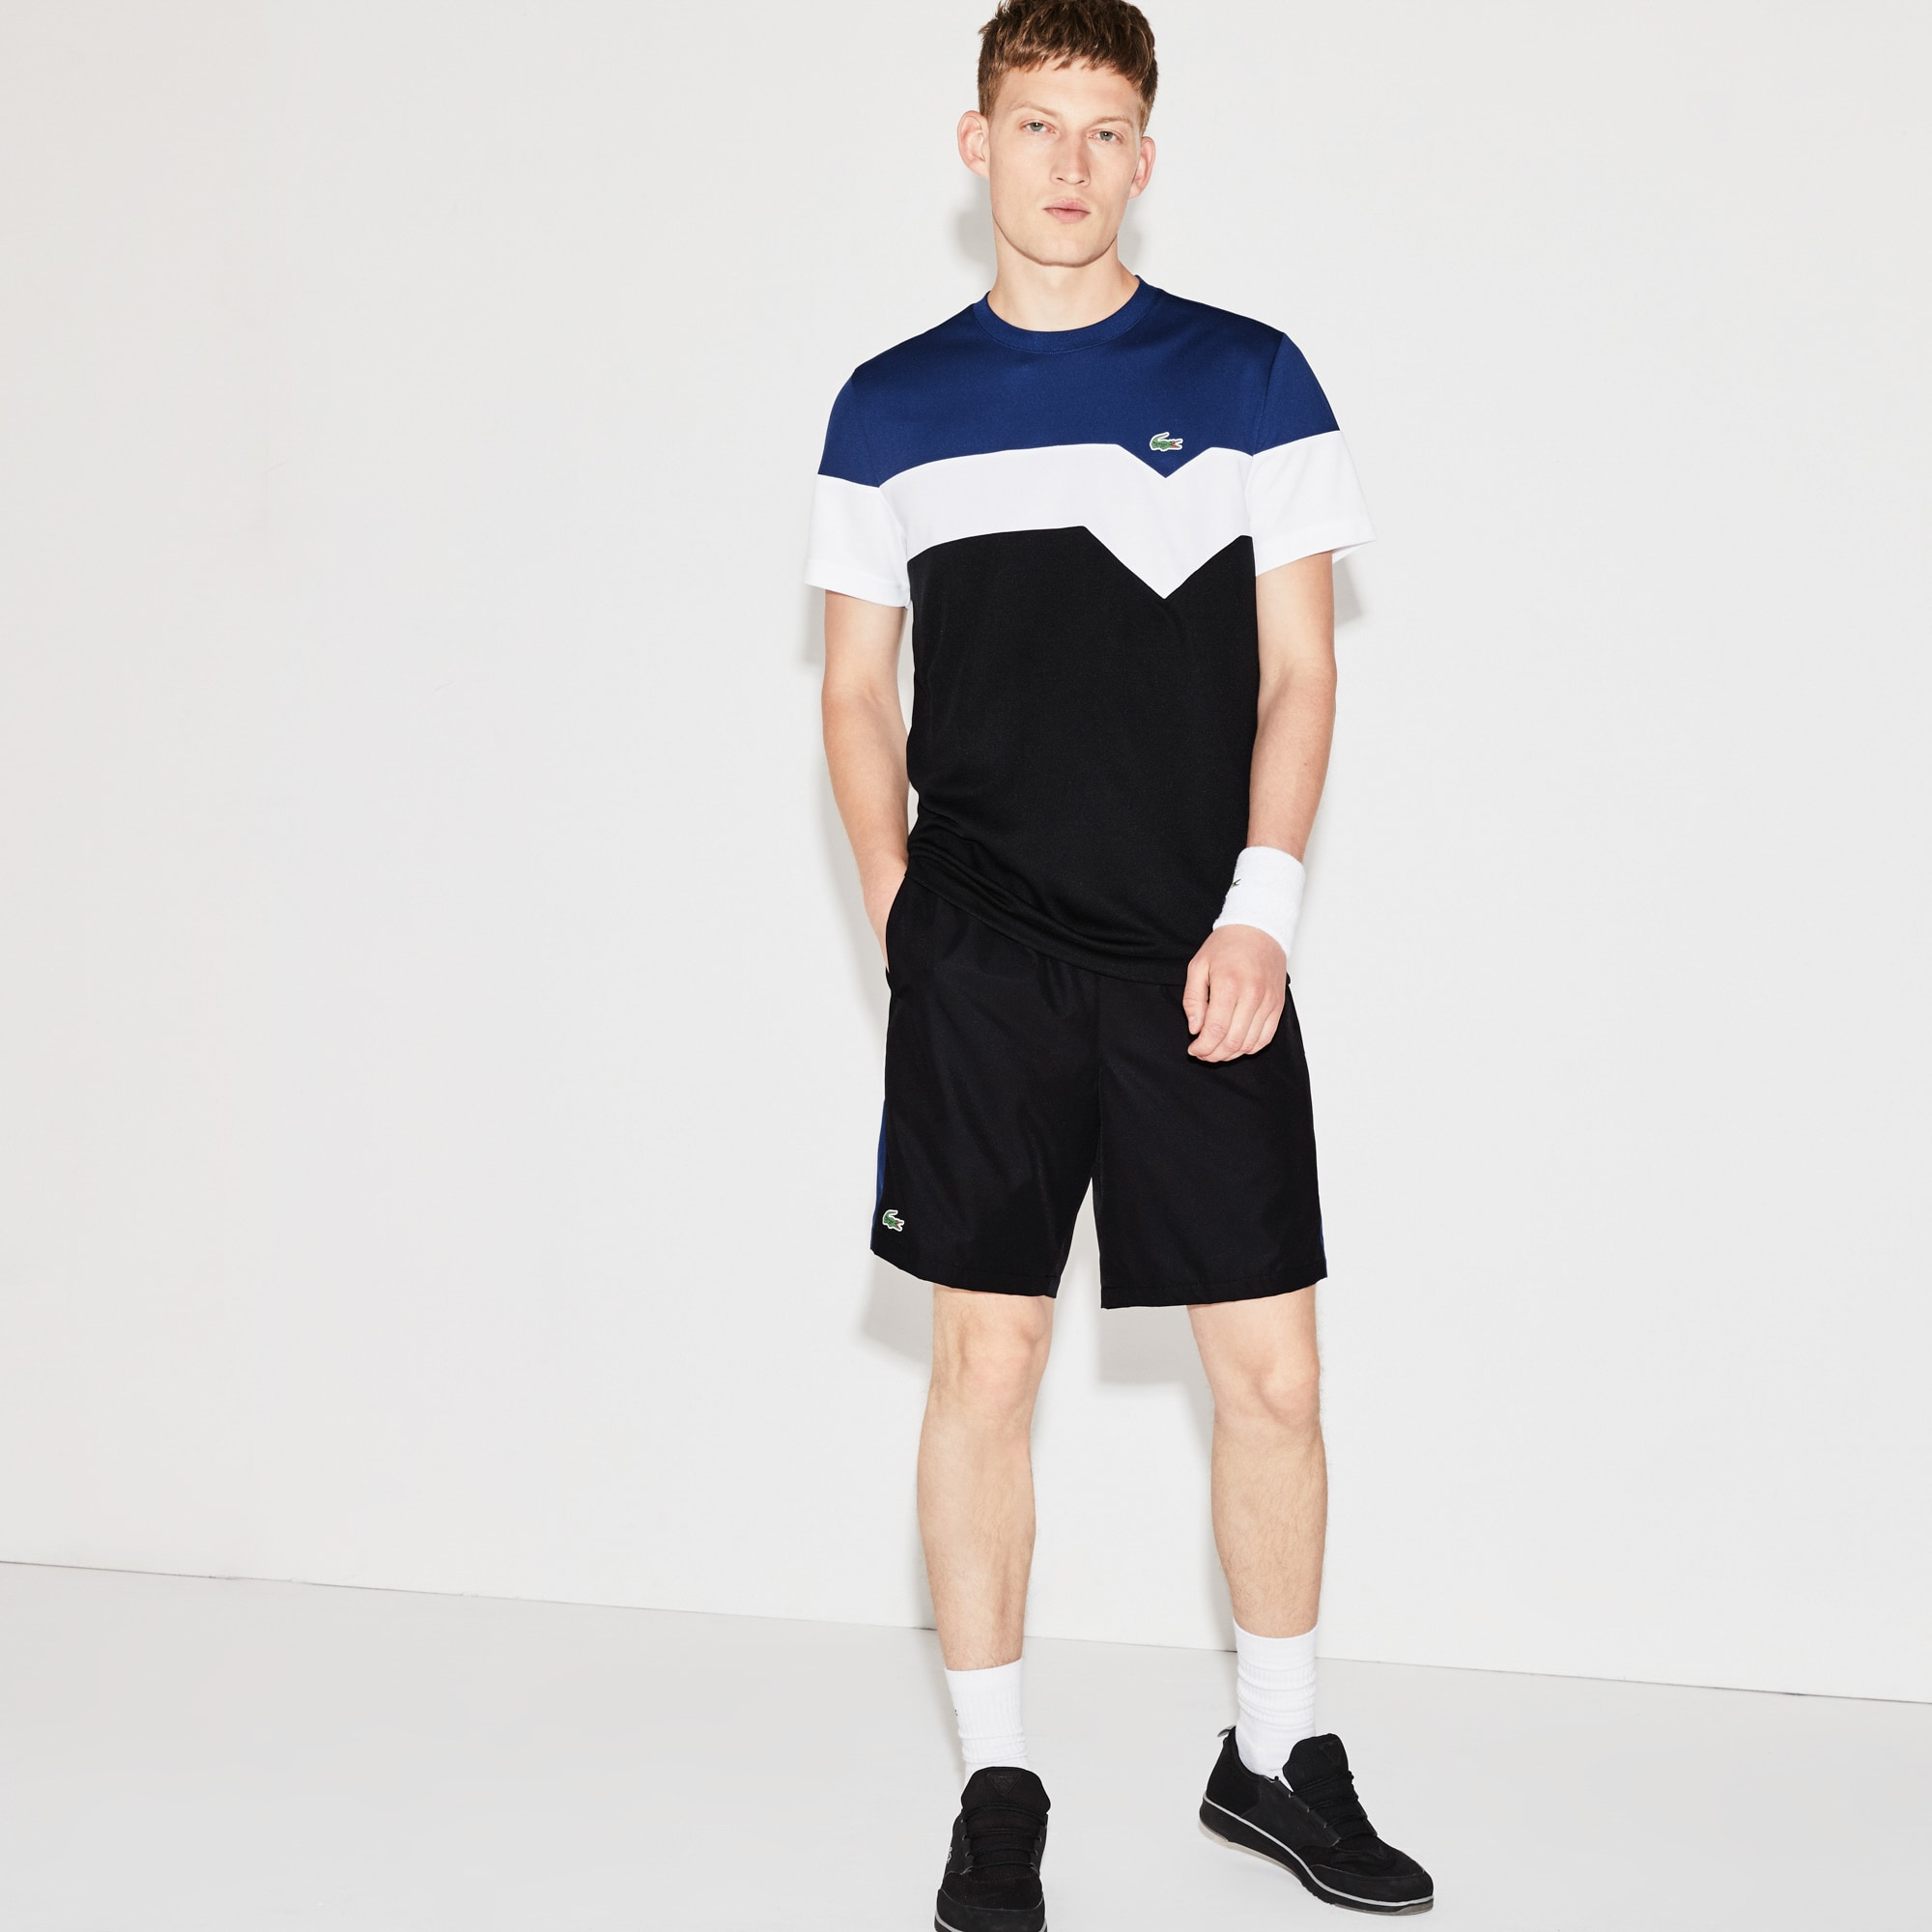 Men's Lacoste SPORT Tennis Colorblock Band Shorts